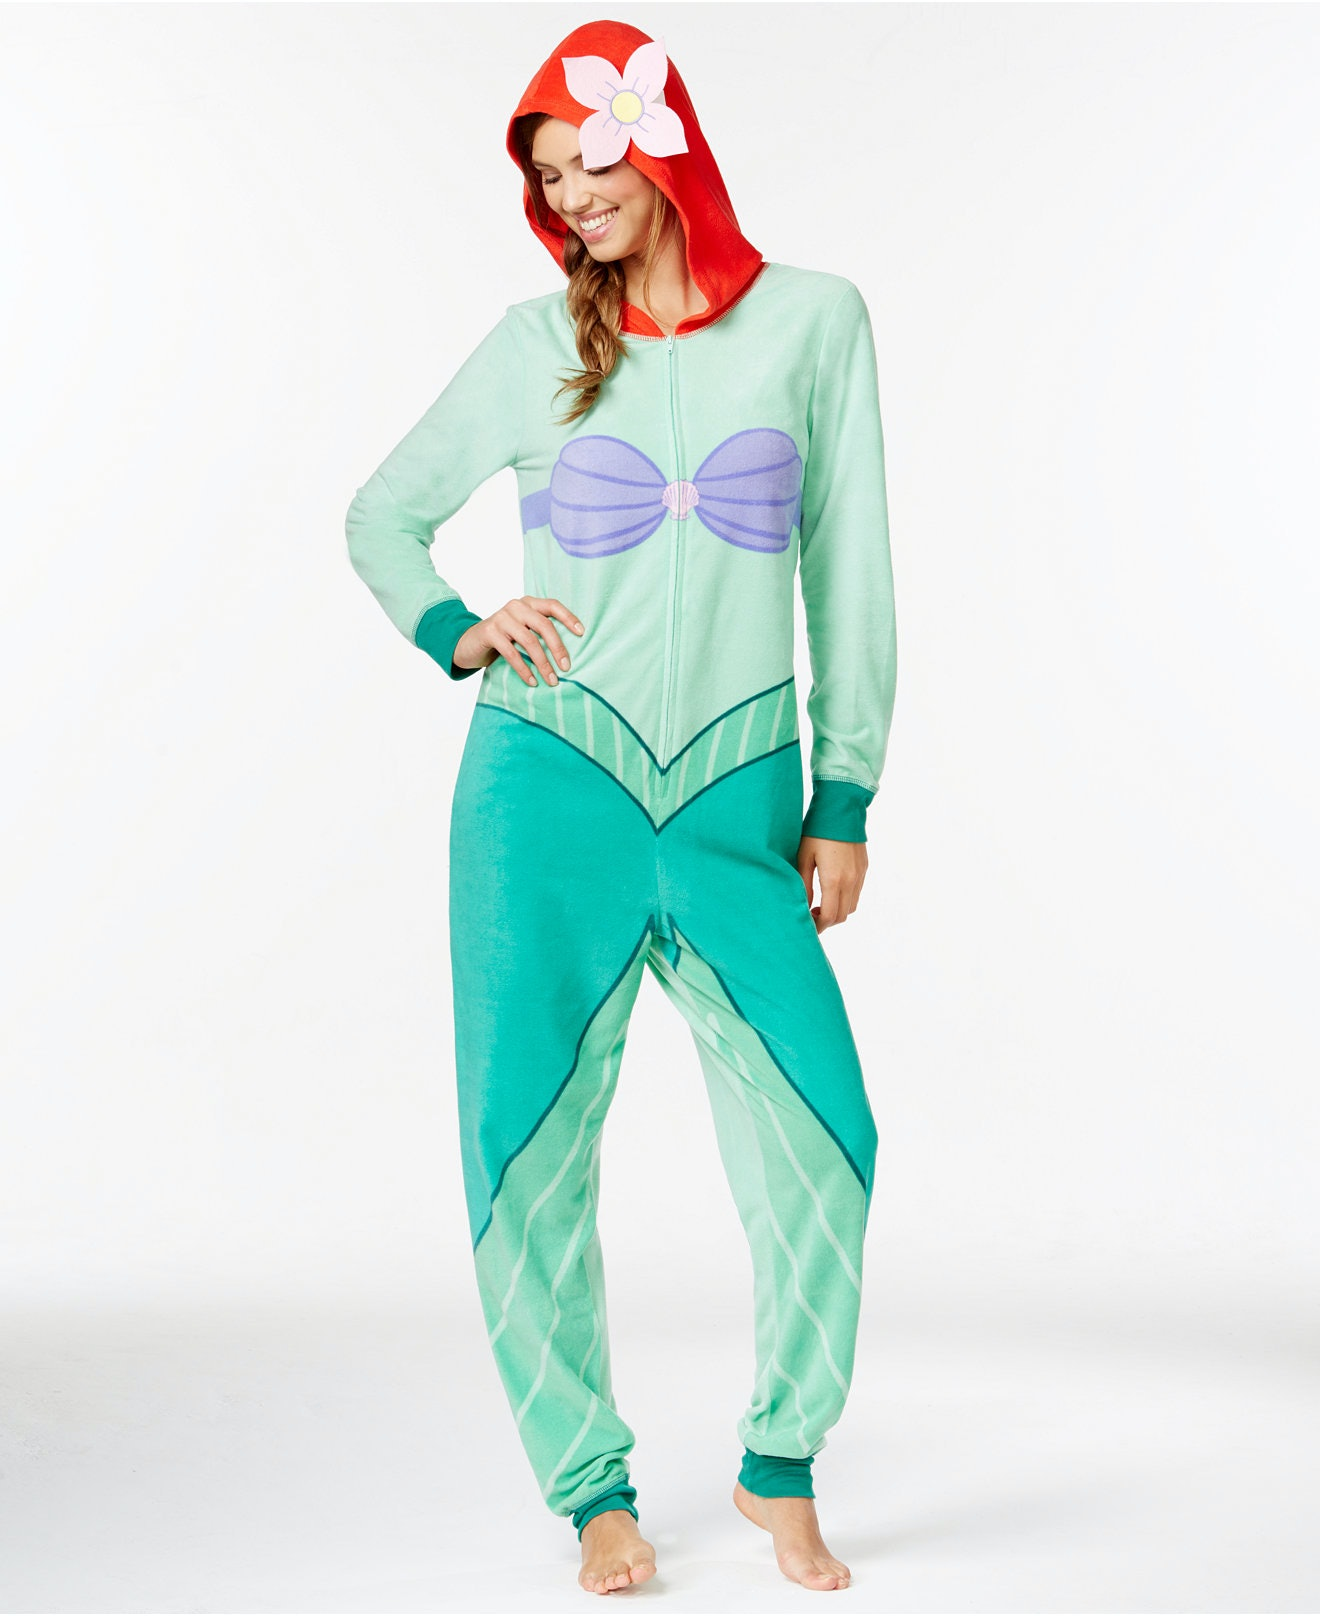 13 Onesie Halloween Costumes For The Lazy Girl Who Wants To Stay Warm —  PHOTOS d0dab41c1